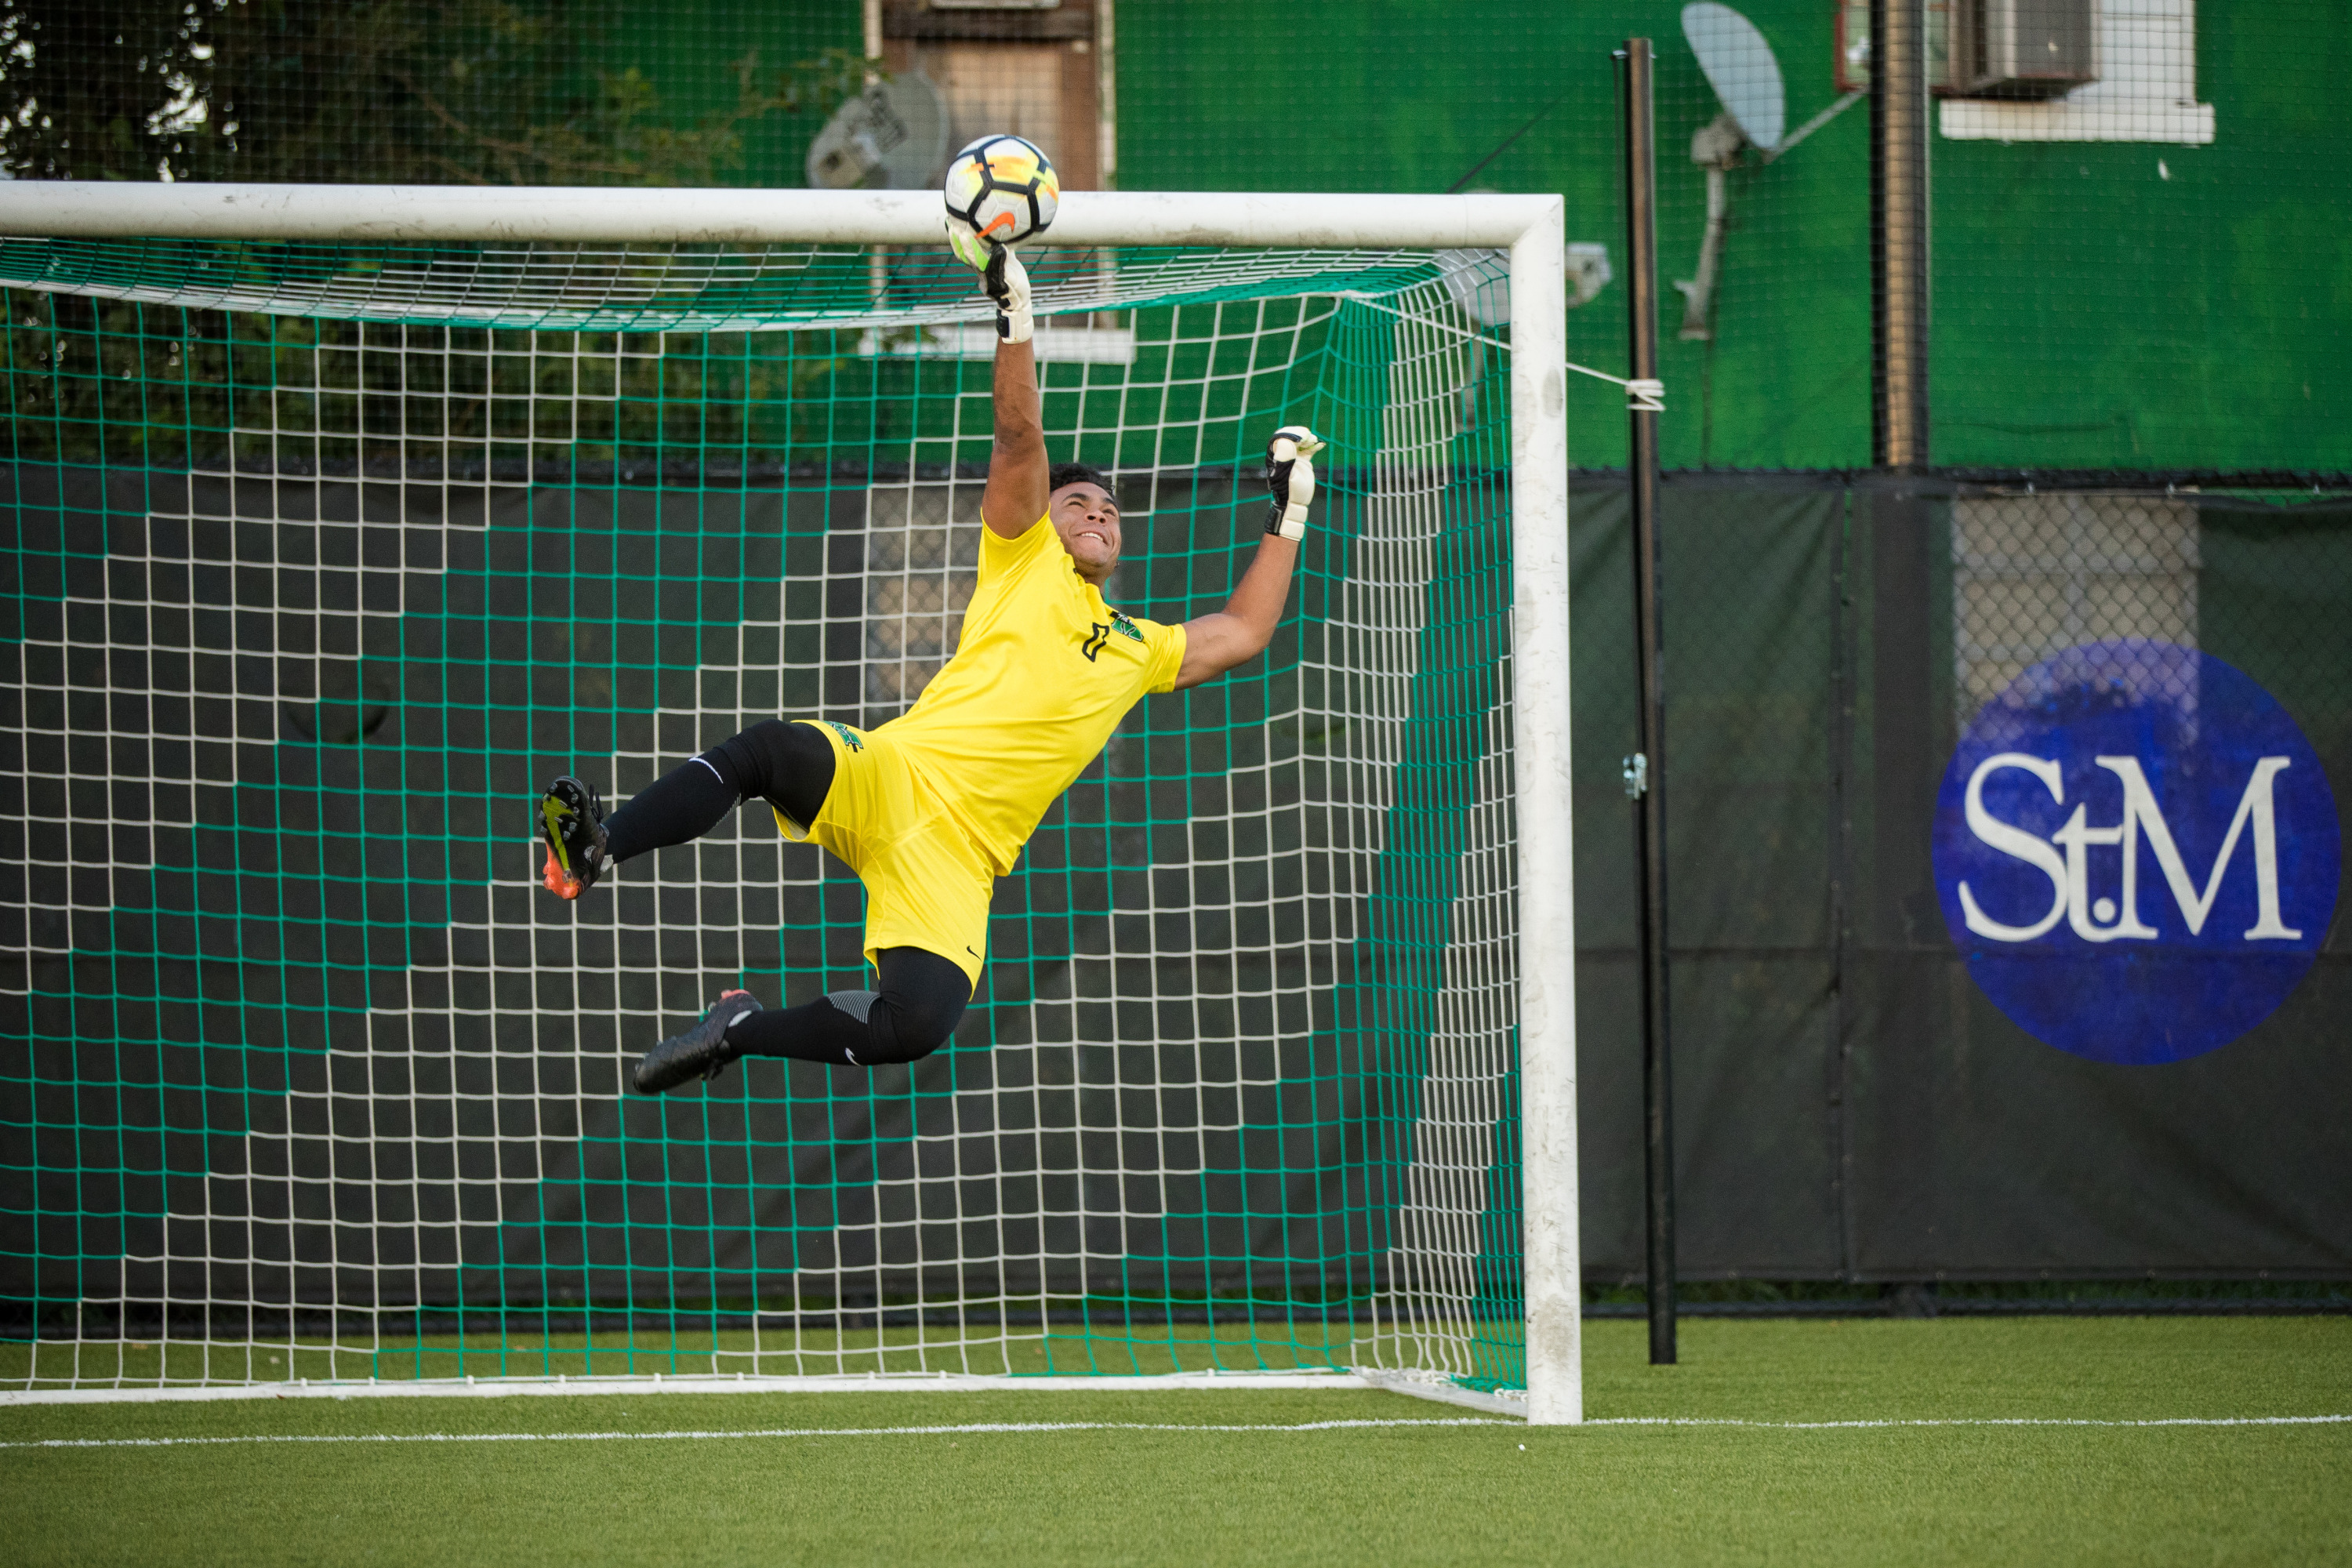 Senior goalkeeper Nate Himes was named Conference USA Defensive Player of the Week on Oct. 16.